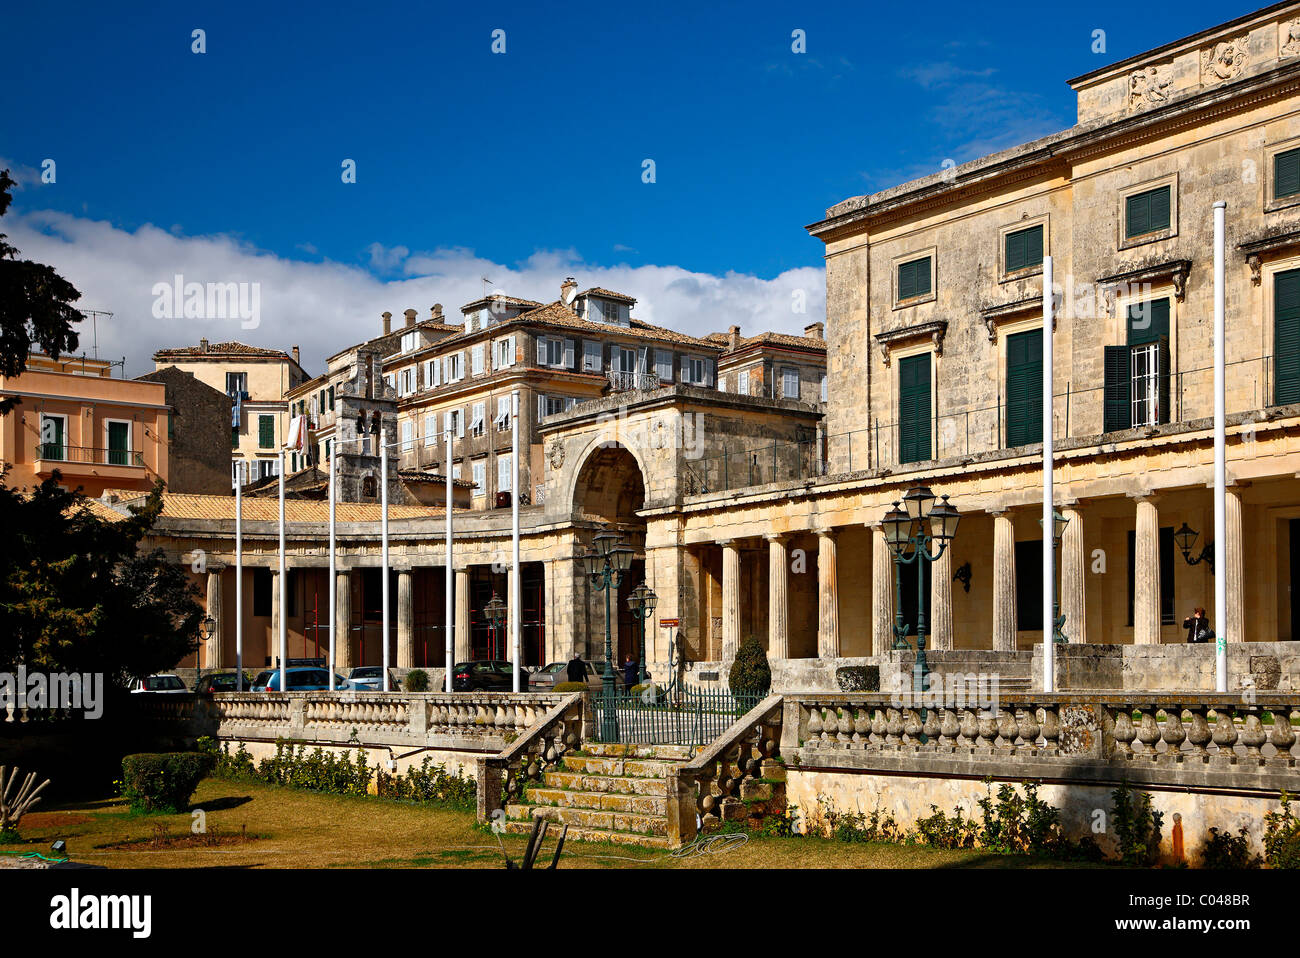 The 'Palace of Saints George & Michael' at the edge of Spianada and Liston, Corfu (or 'Kerkyra') - Stock Image